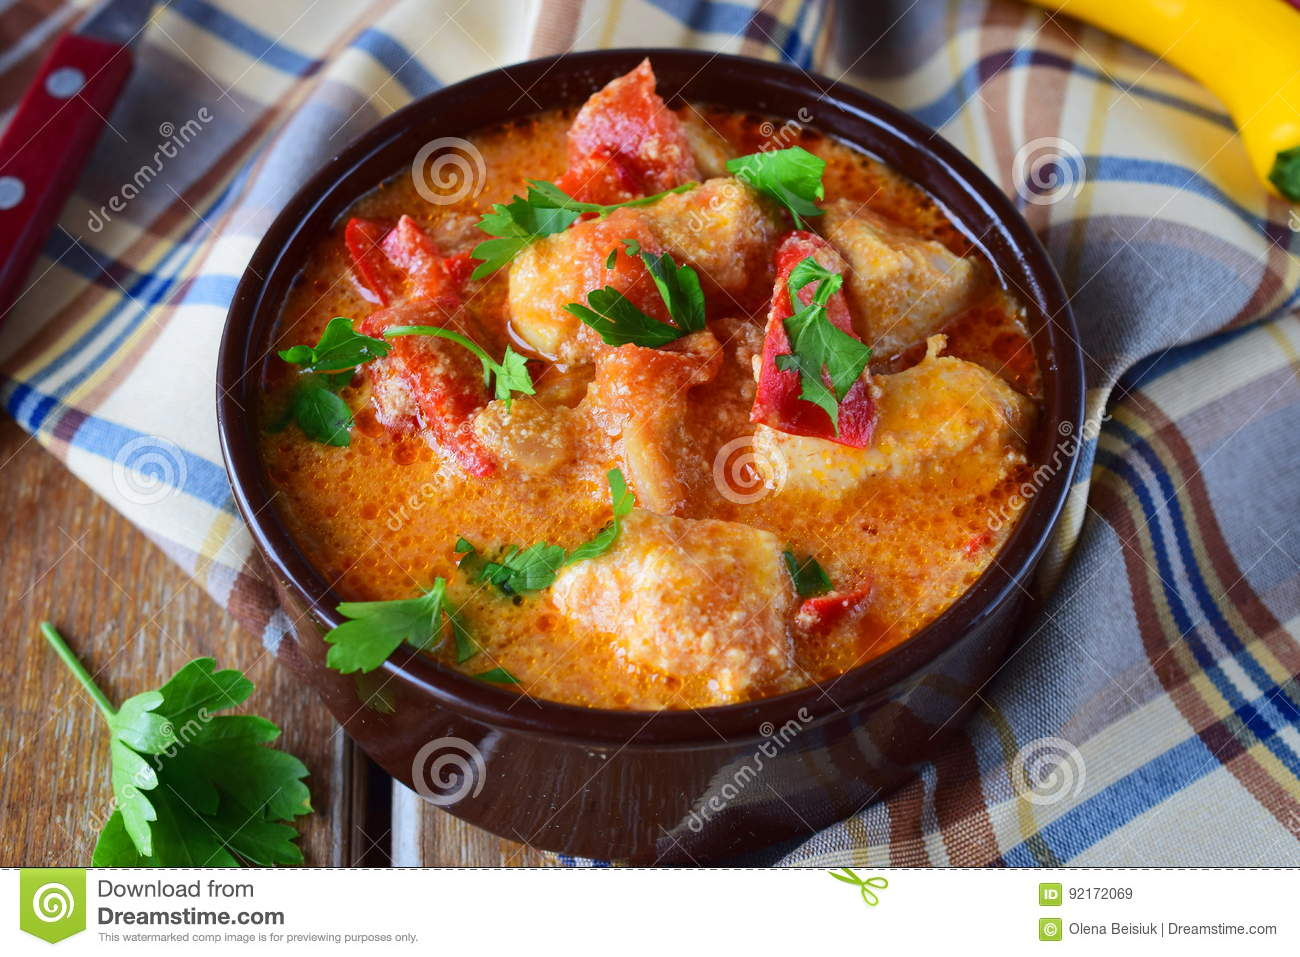 Traditional Hungarian dish witth paprika and chicken in a creamy sause In a ceramic pot. Healthy eating concept.